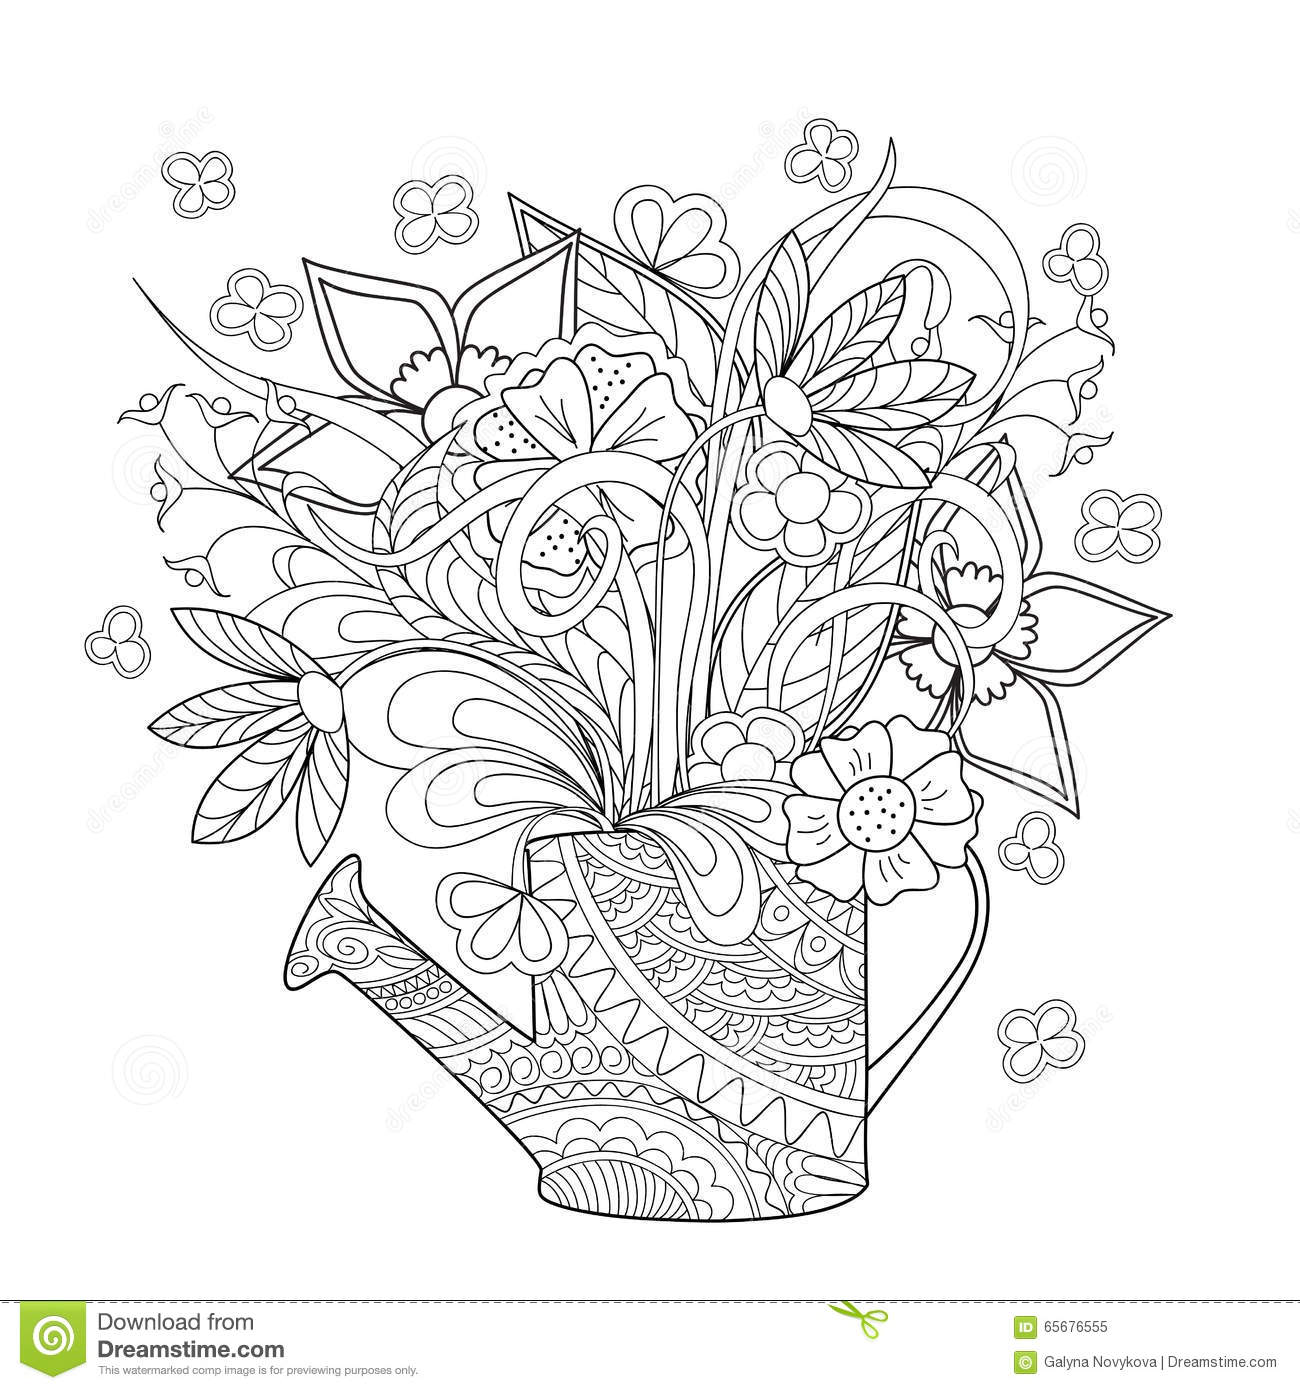 herbs coloring pages - photo#21